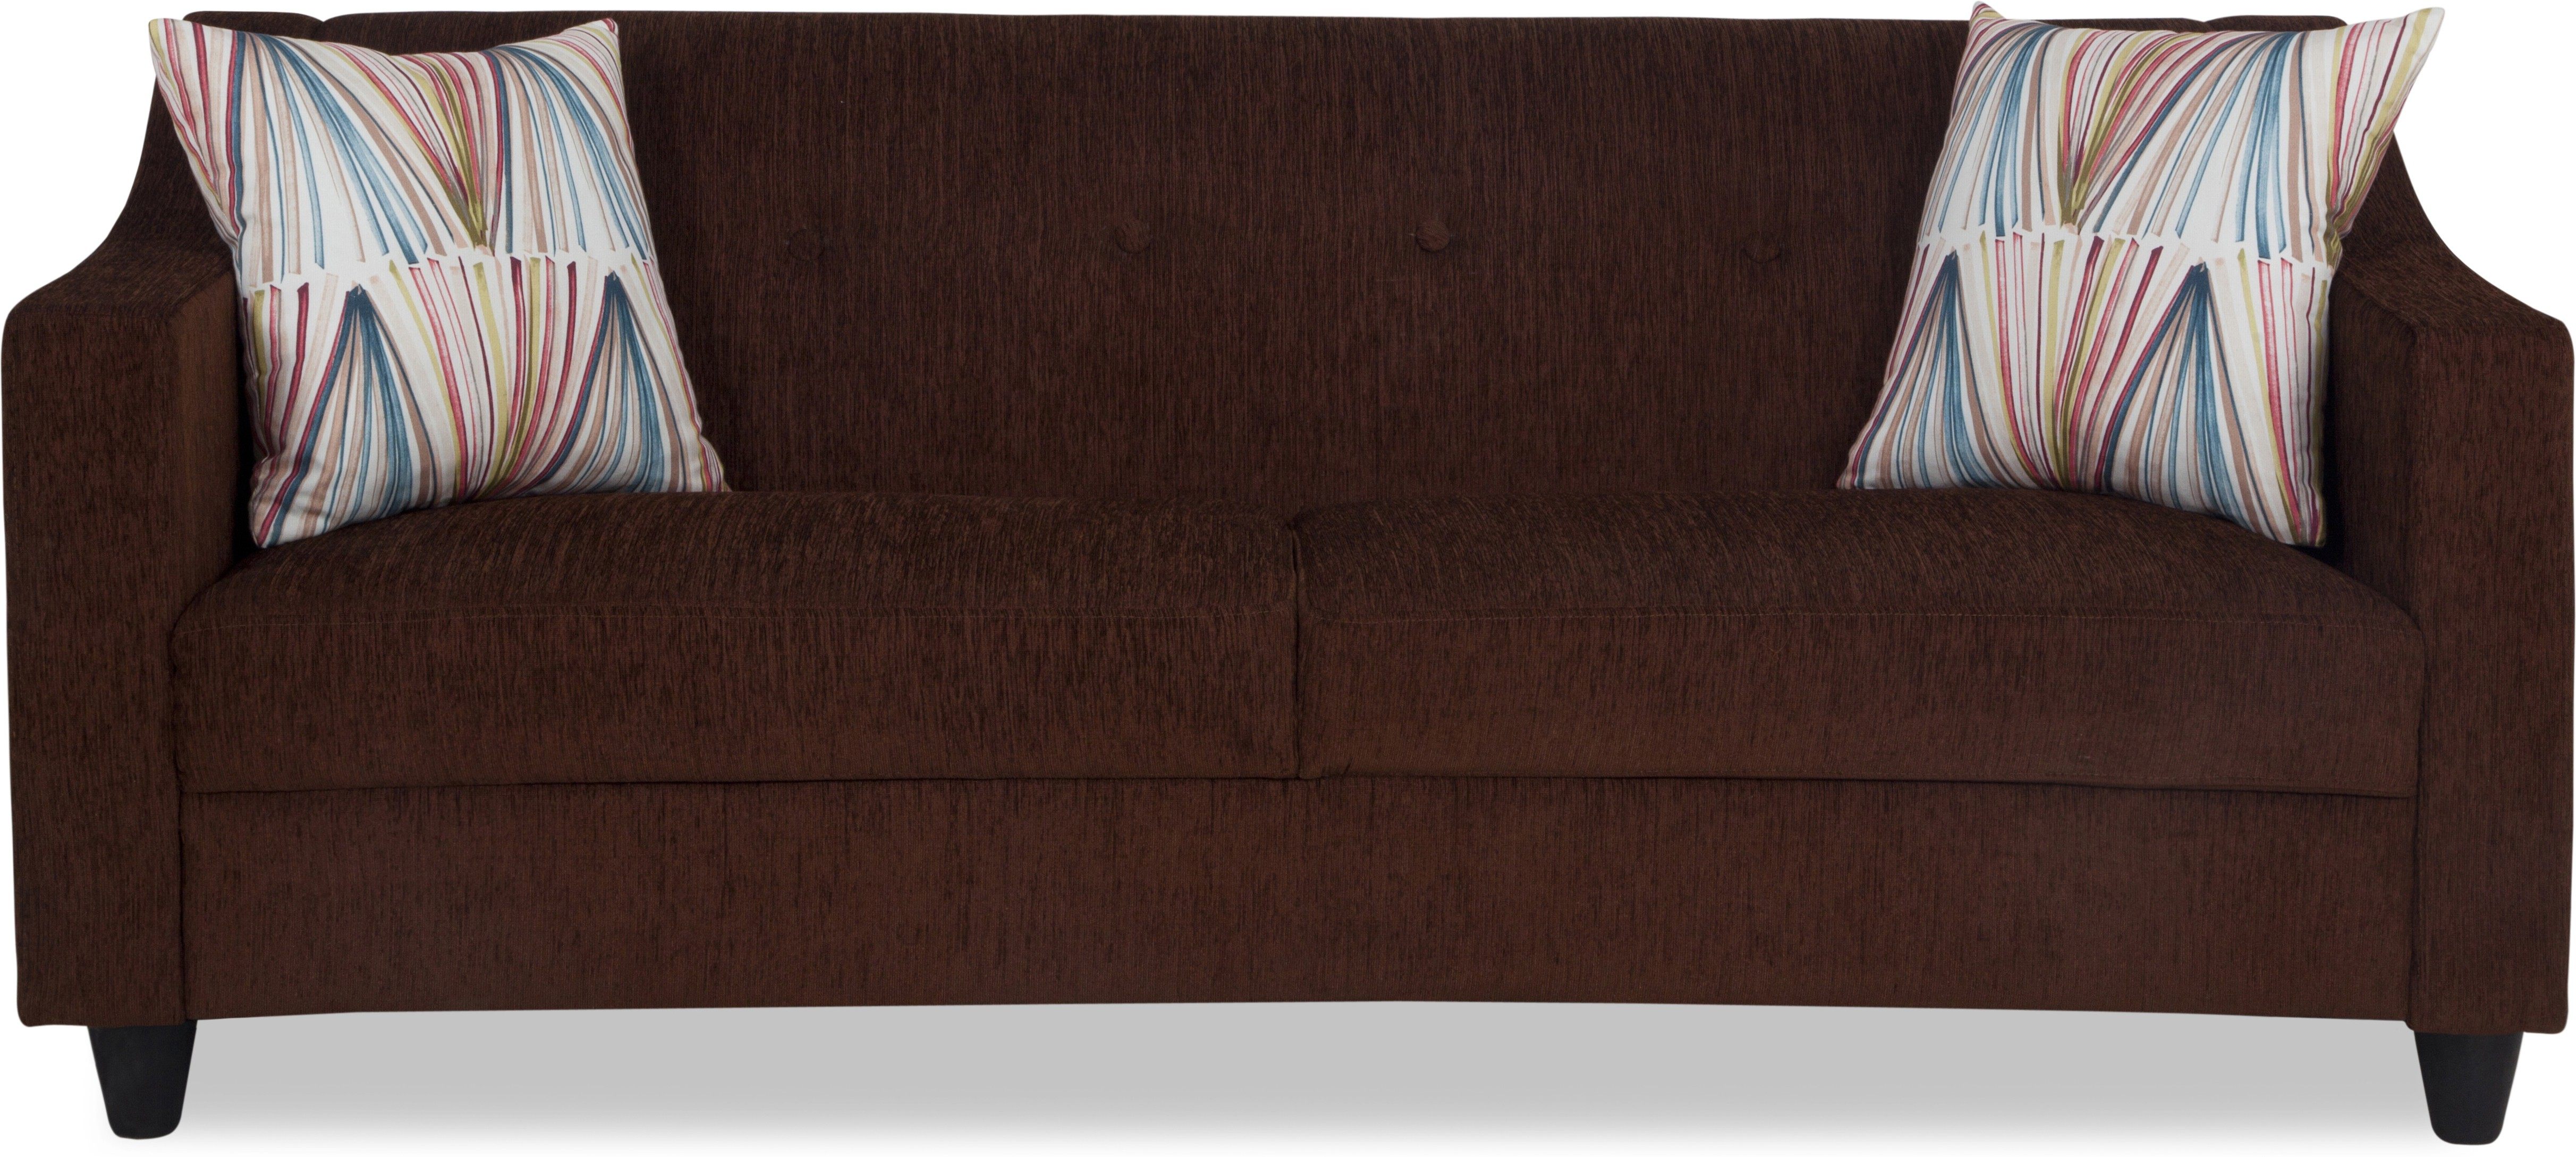 Urban Living Fabric 3 Seater Sofa